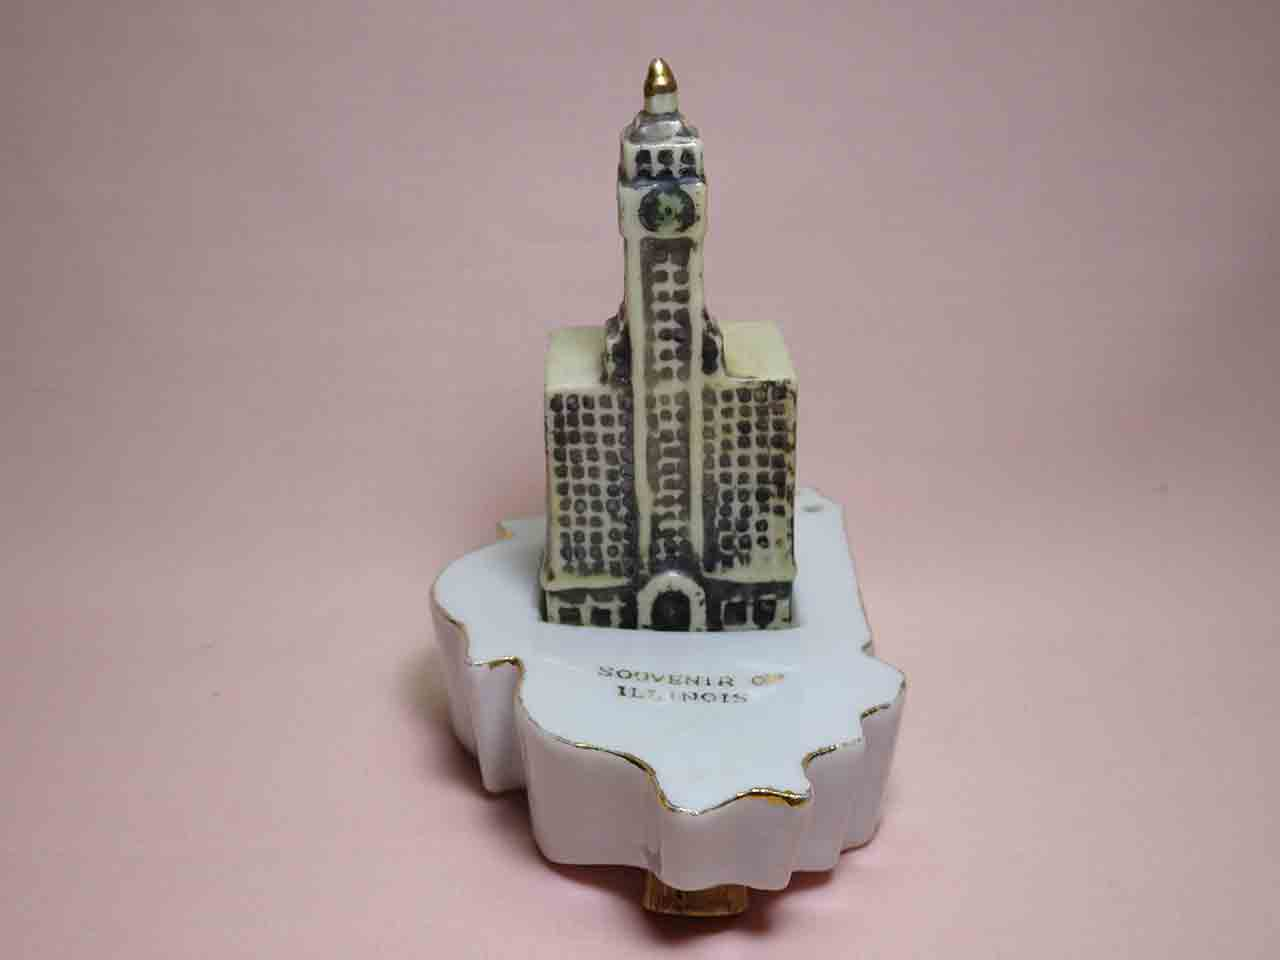 Illinois with Wrigley Building salt and pepper shakers